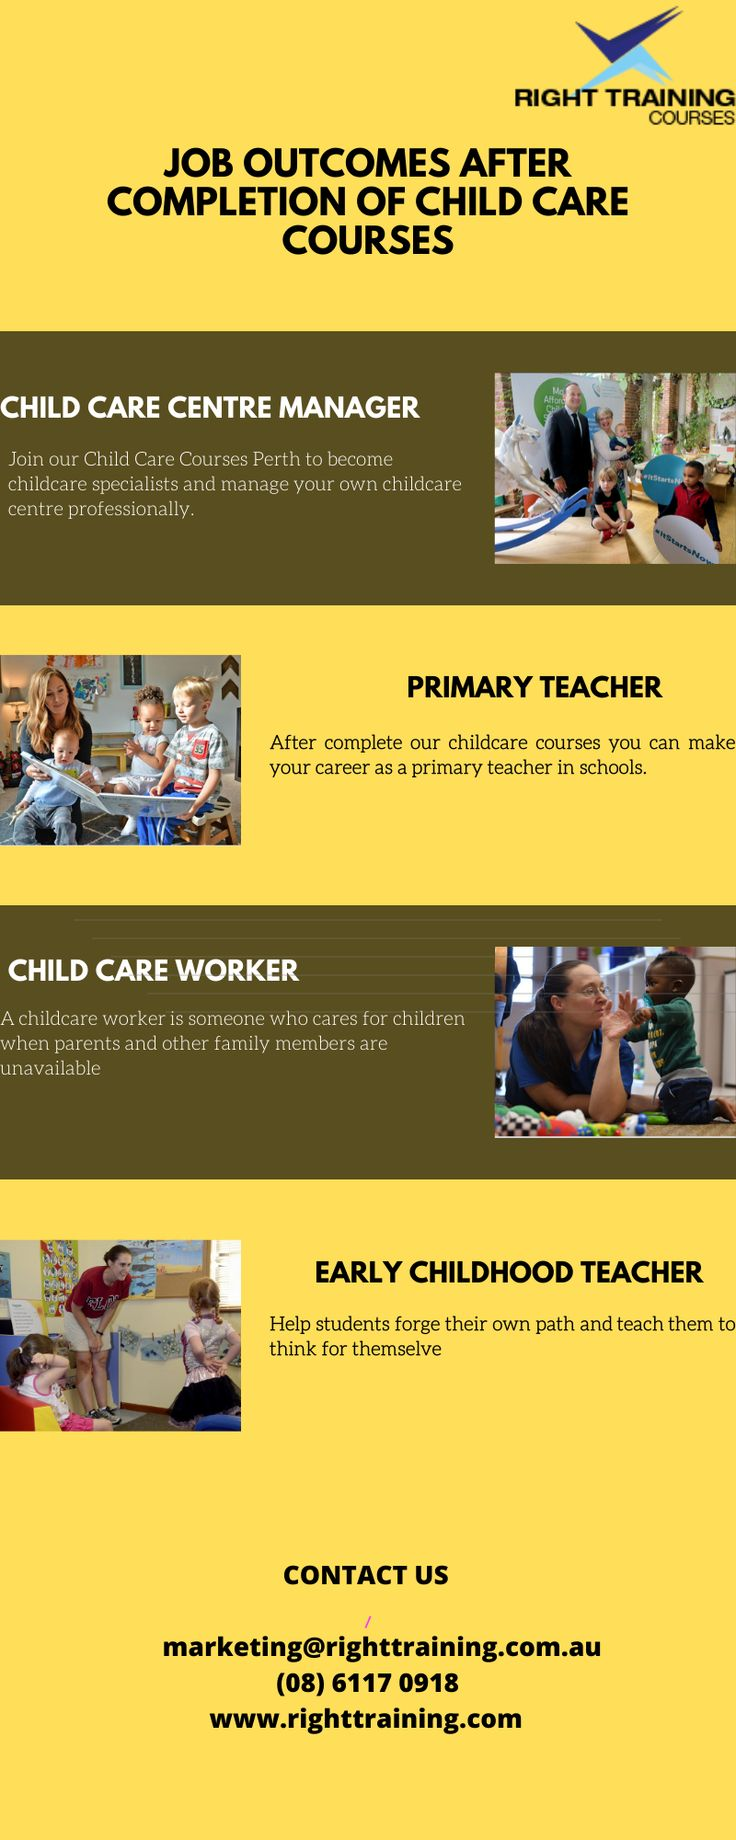 Join our Child Care Courses Perth to childcare